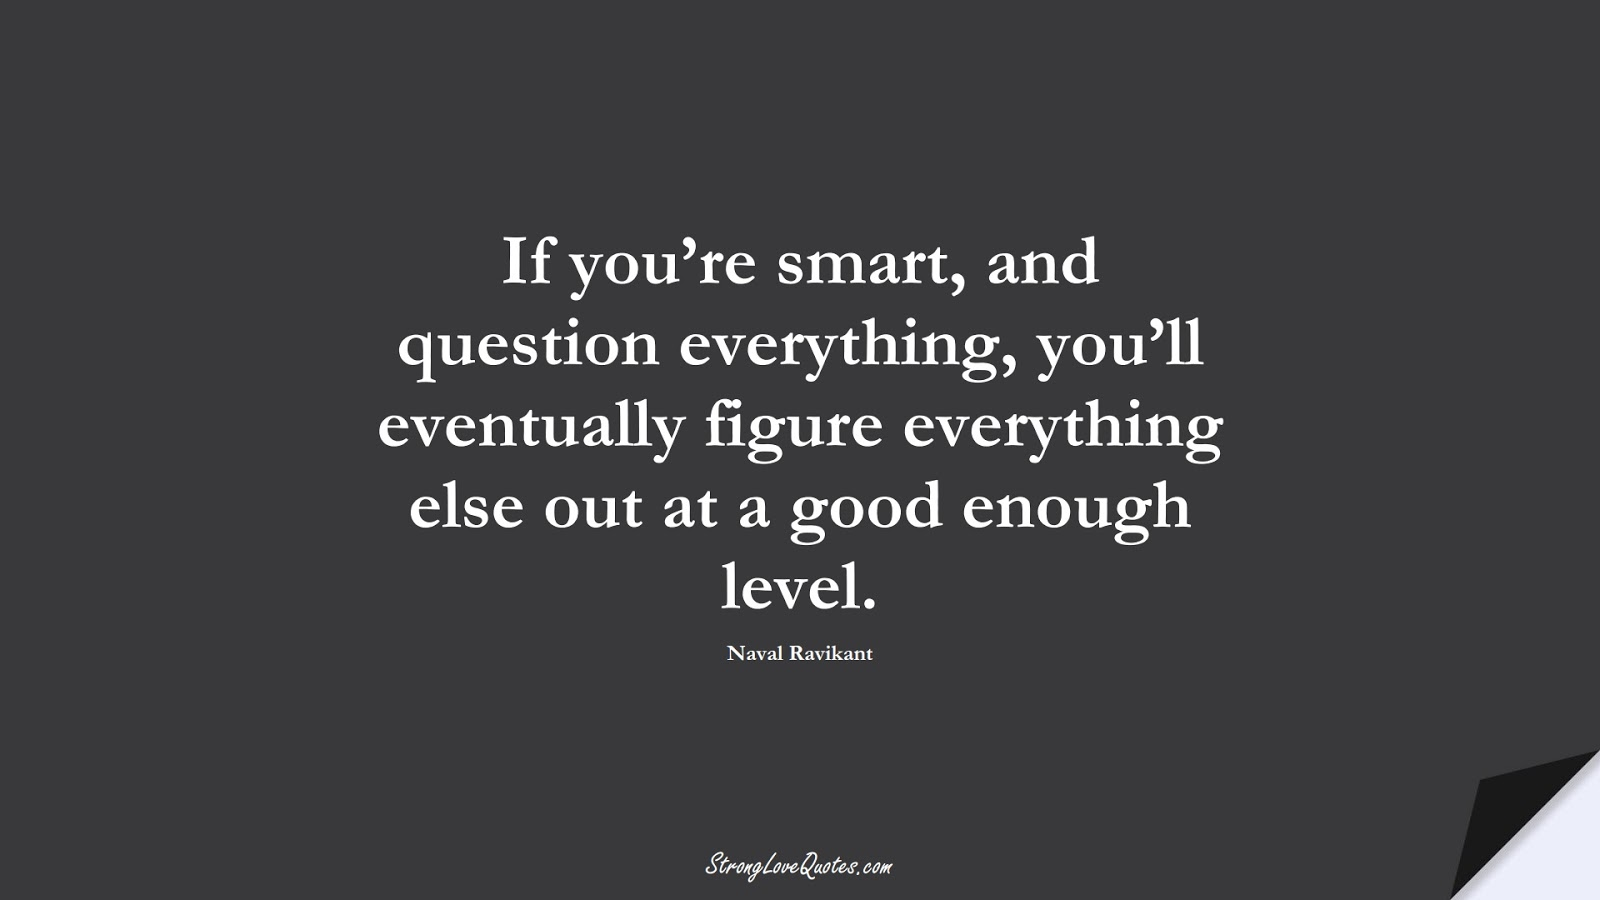 If you're smart, and question everything, you'll eventually figure everything else out at a good enough level. (Naval Ravikant);  #LearningQuotes